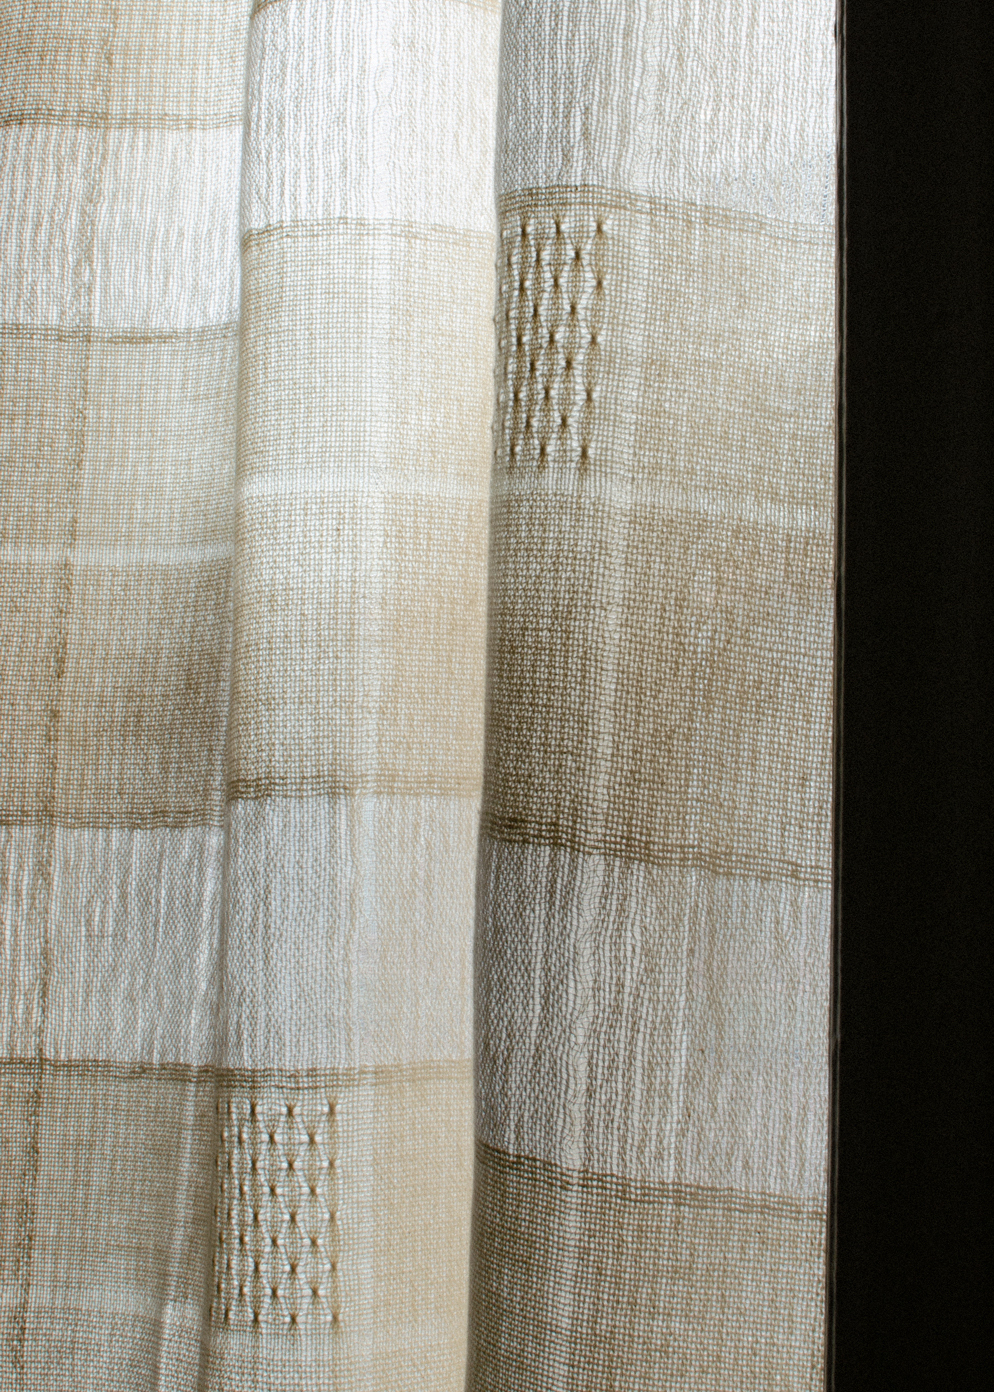 Free Pattern to Weave a Pair of Brooks Bouquet Curtains